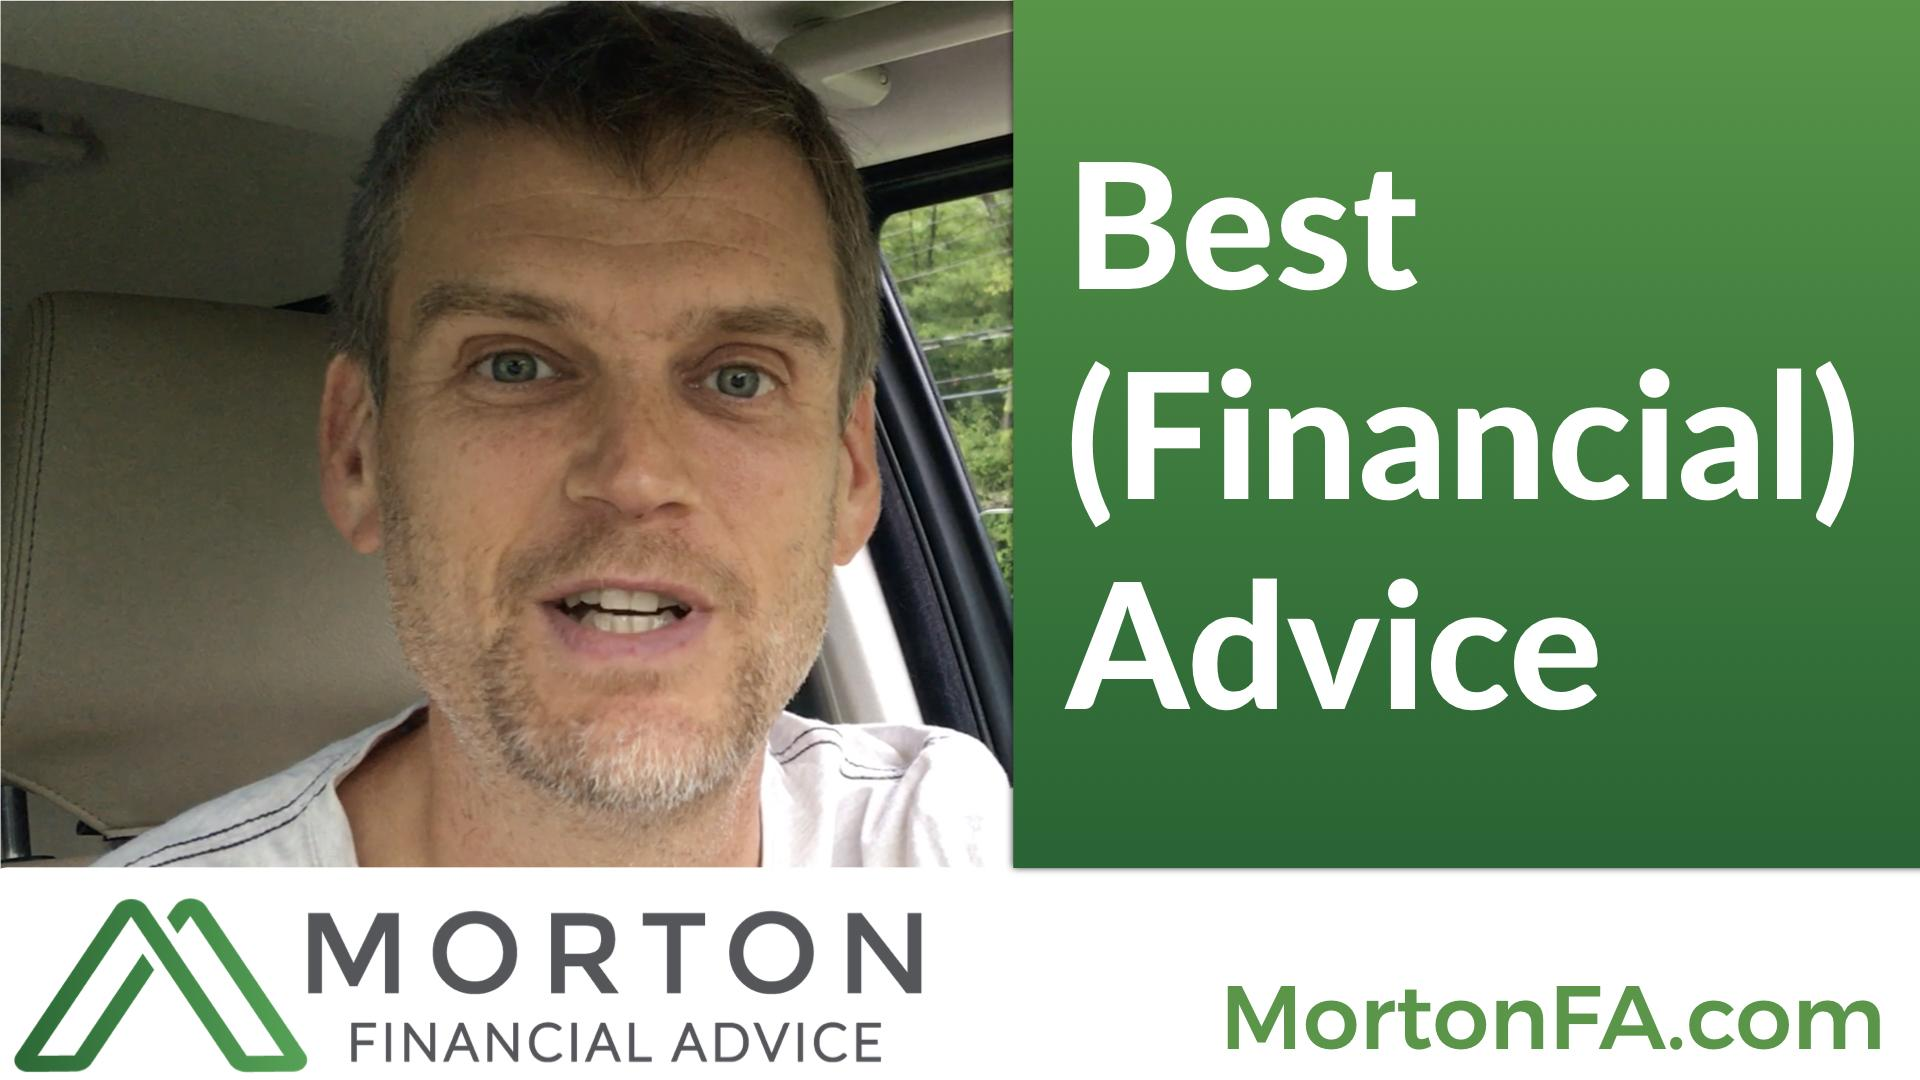 My Best (Financial) Advice Thumbnail